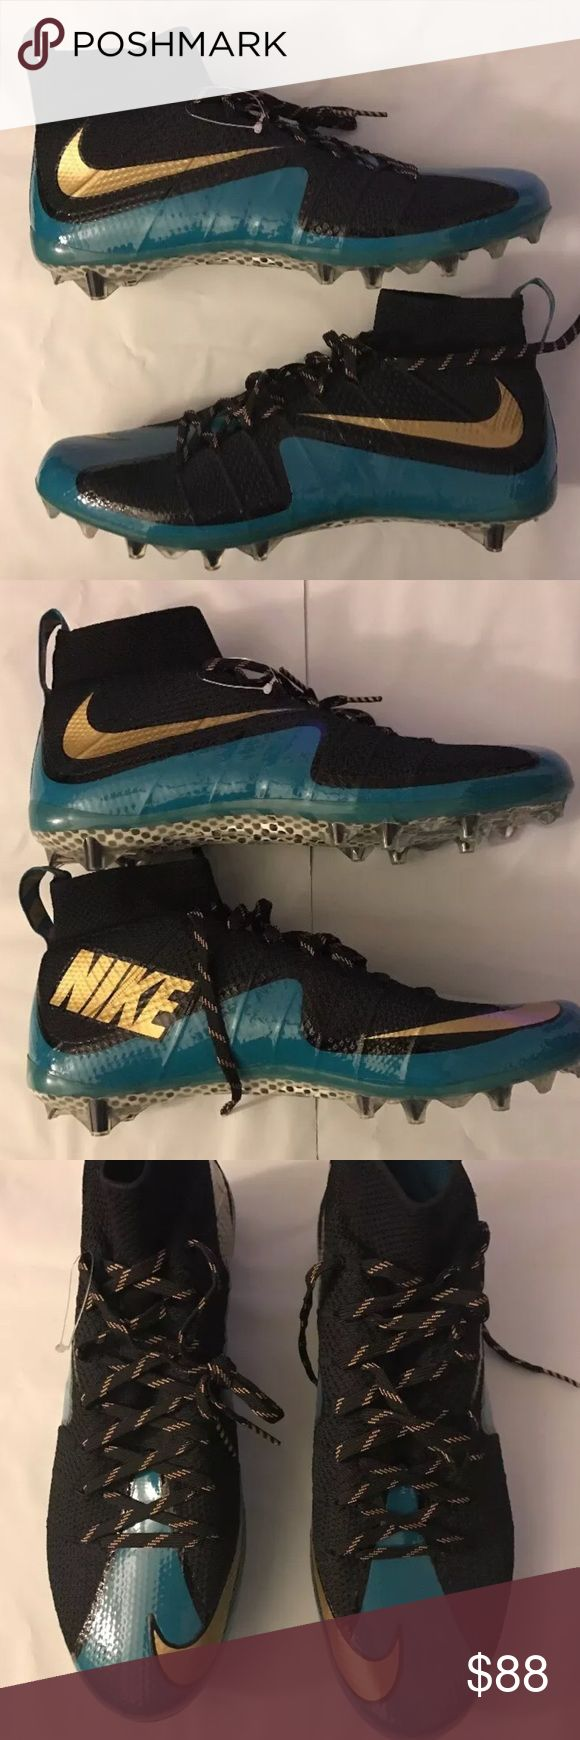 New Nike Untouchable Vapor Flyknit Cleats Size 15 New without box, never worn.  Jaguar colors (teal, gold, black) Size 15 Some of the best Cleats out! Nike Shoes Athletic Shoes